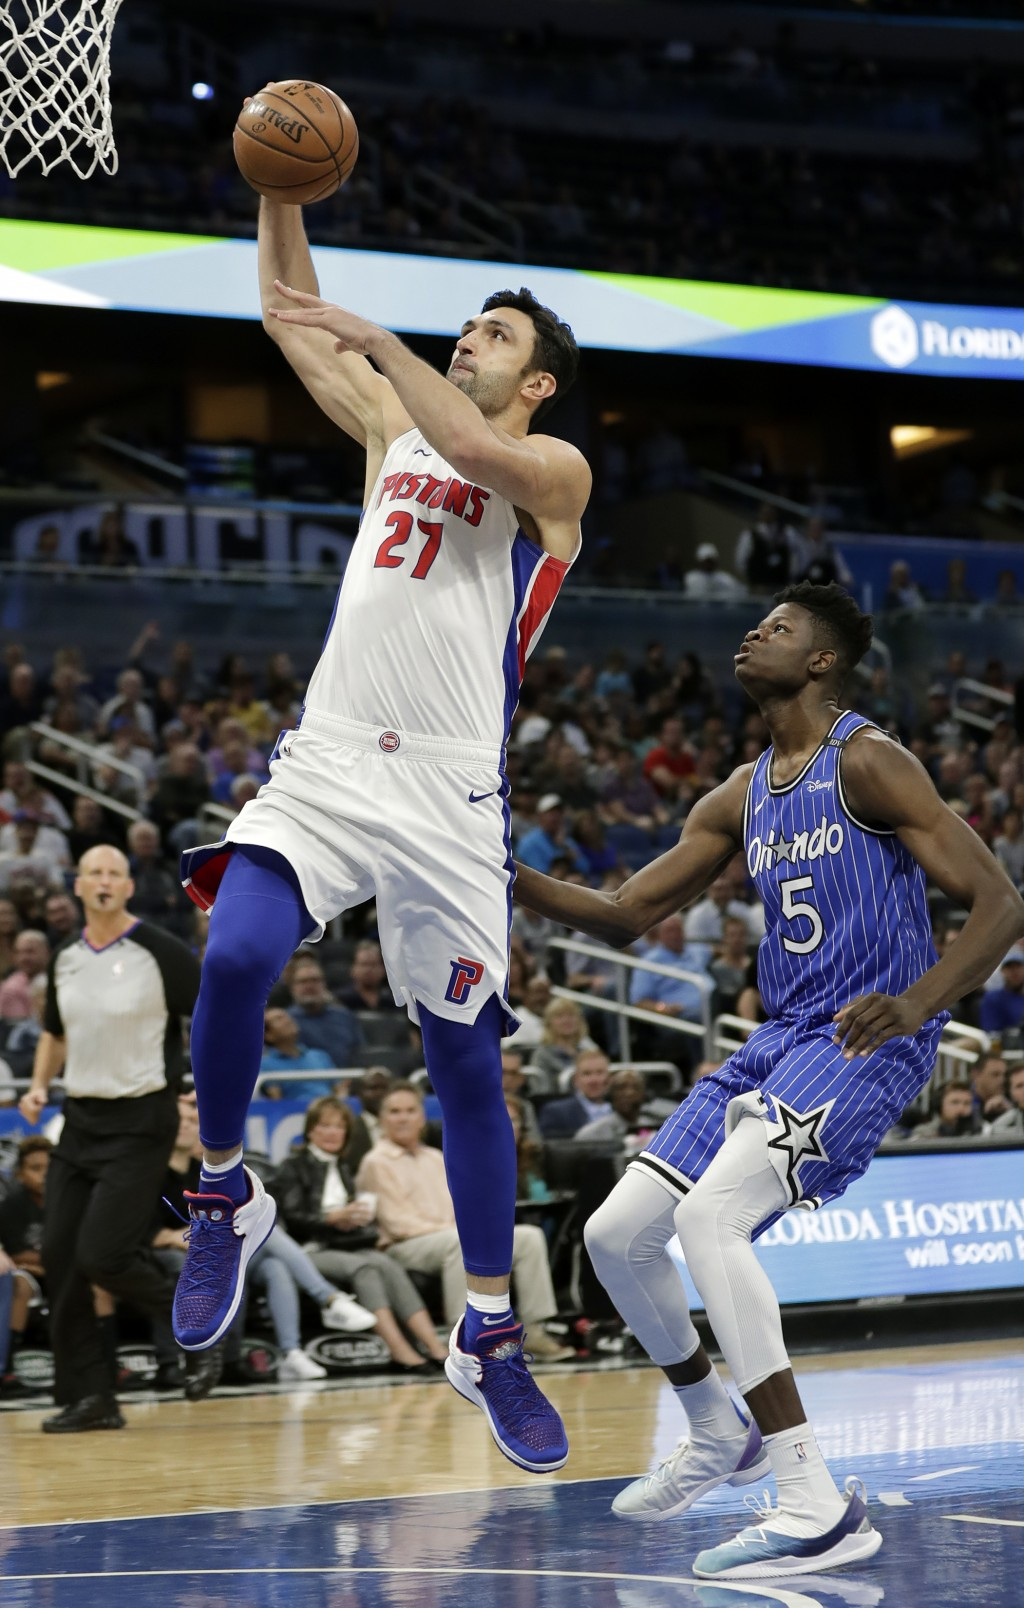 Detroit Pistons' Zaza Pachulia (27) goes past Orlando Magic's Mohamed Bamba (5) for a shot during the first half of an NBA basketball game, Wednesday,